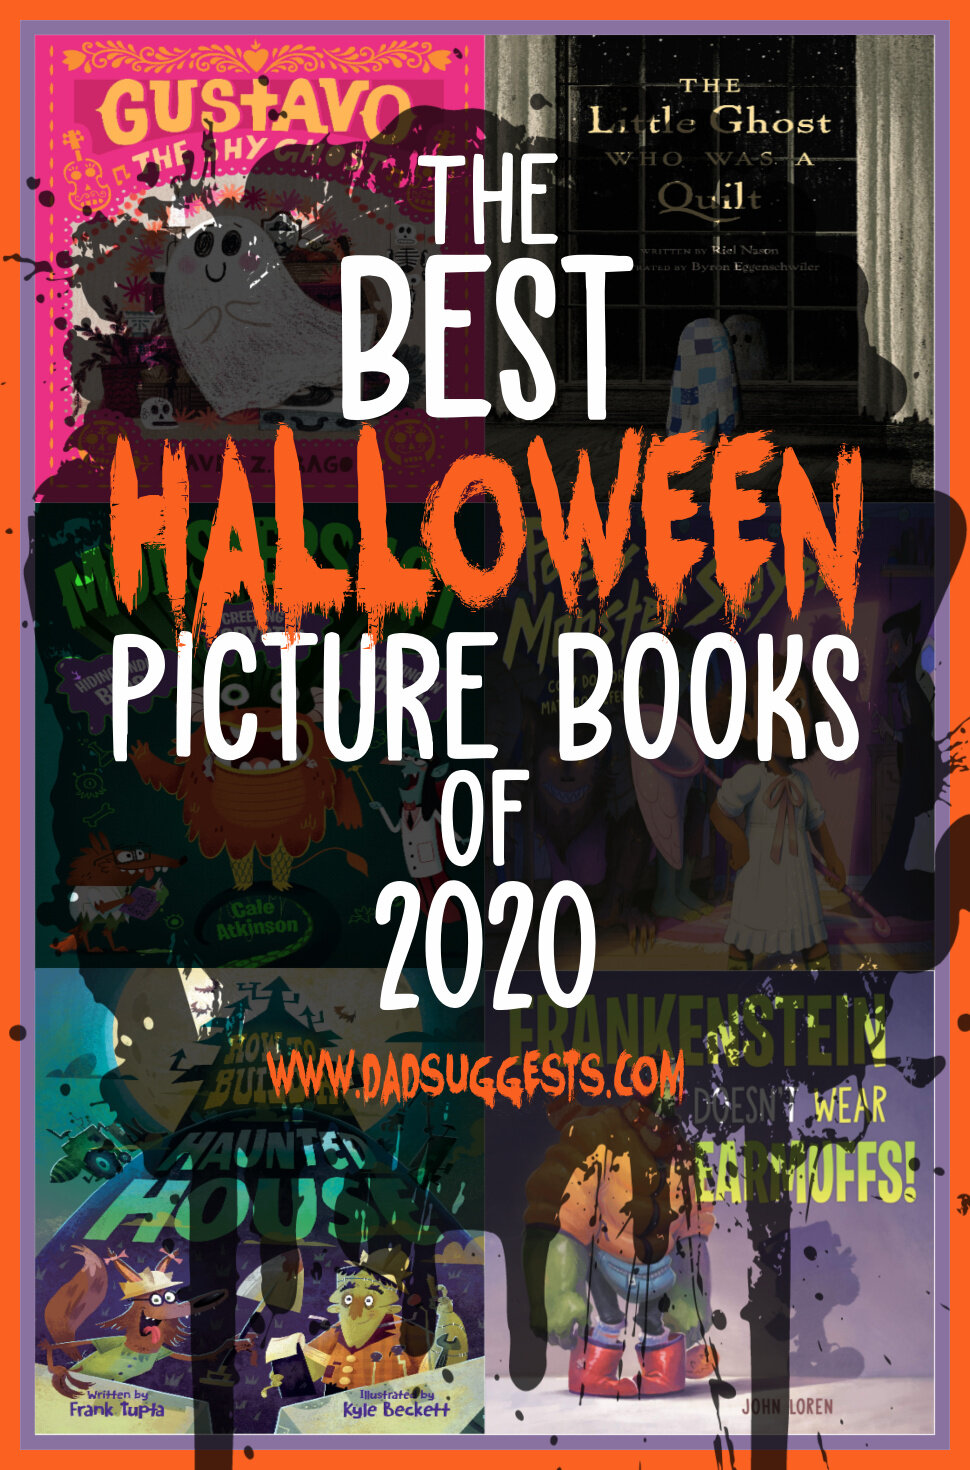 Halloween Books October 2020 The Best Halloween Picture Books of 2020 | Dad Suggests